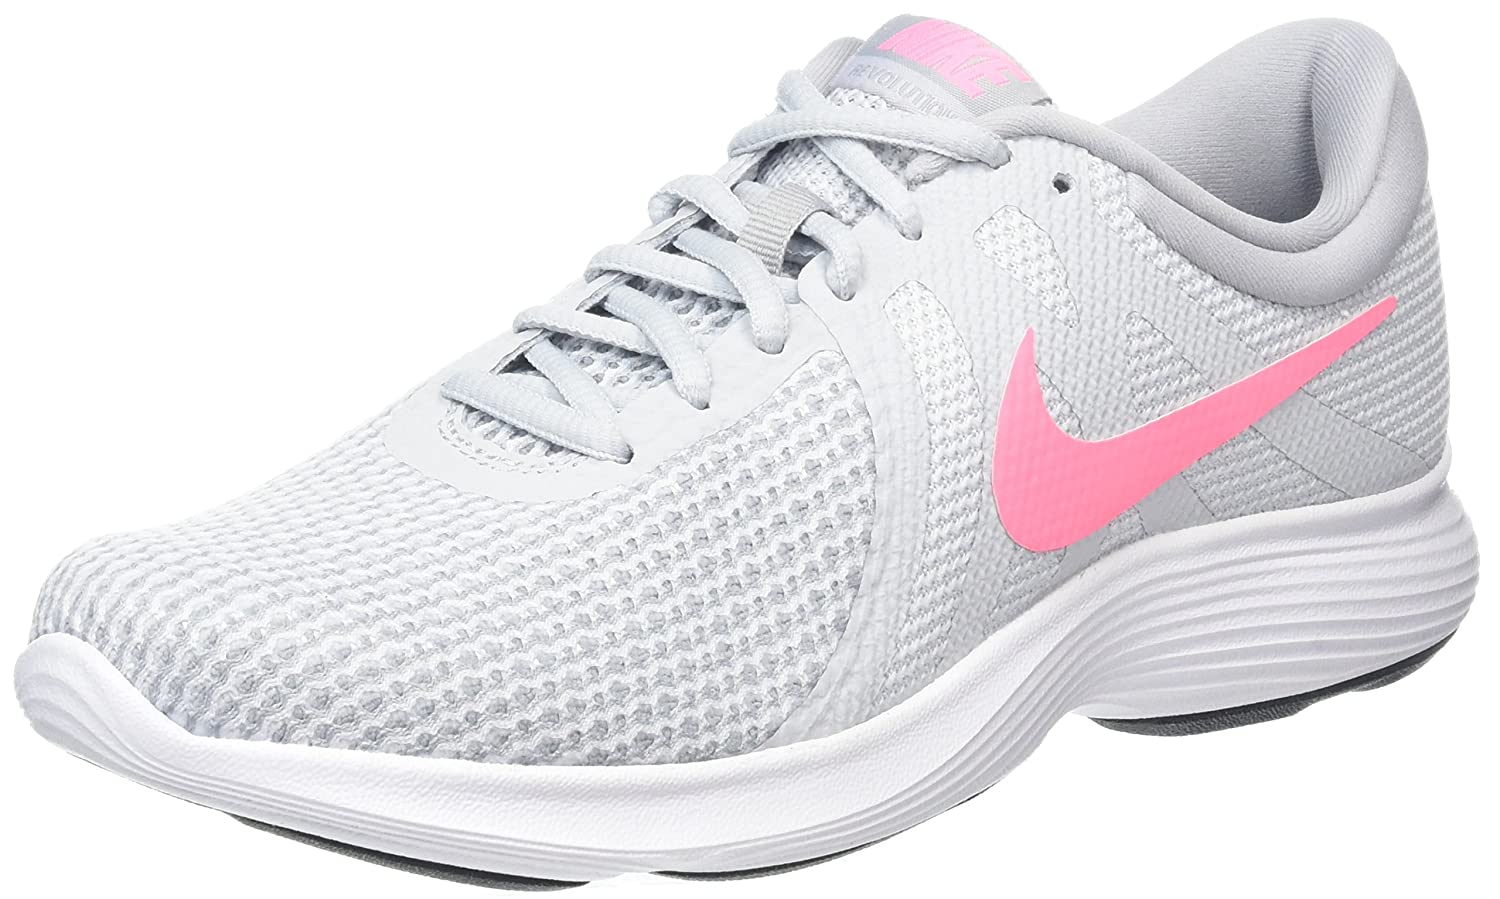 separation shoes bc5e6 2dd38 Nike Women s Revolution 4 EU Running Shoes  Amazon.co.uk  Shoes   Bags